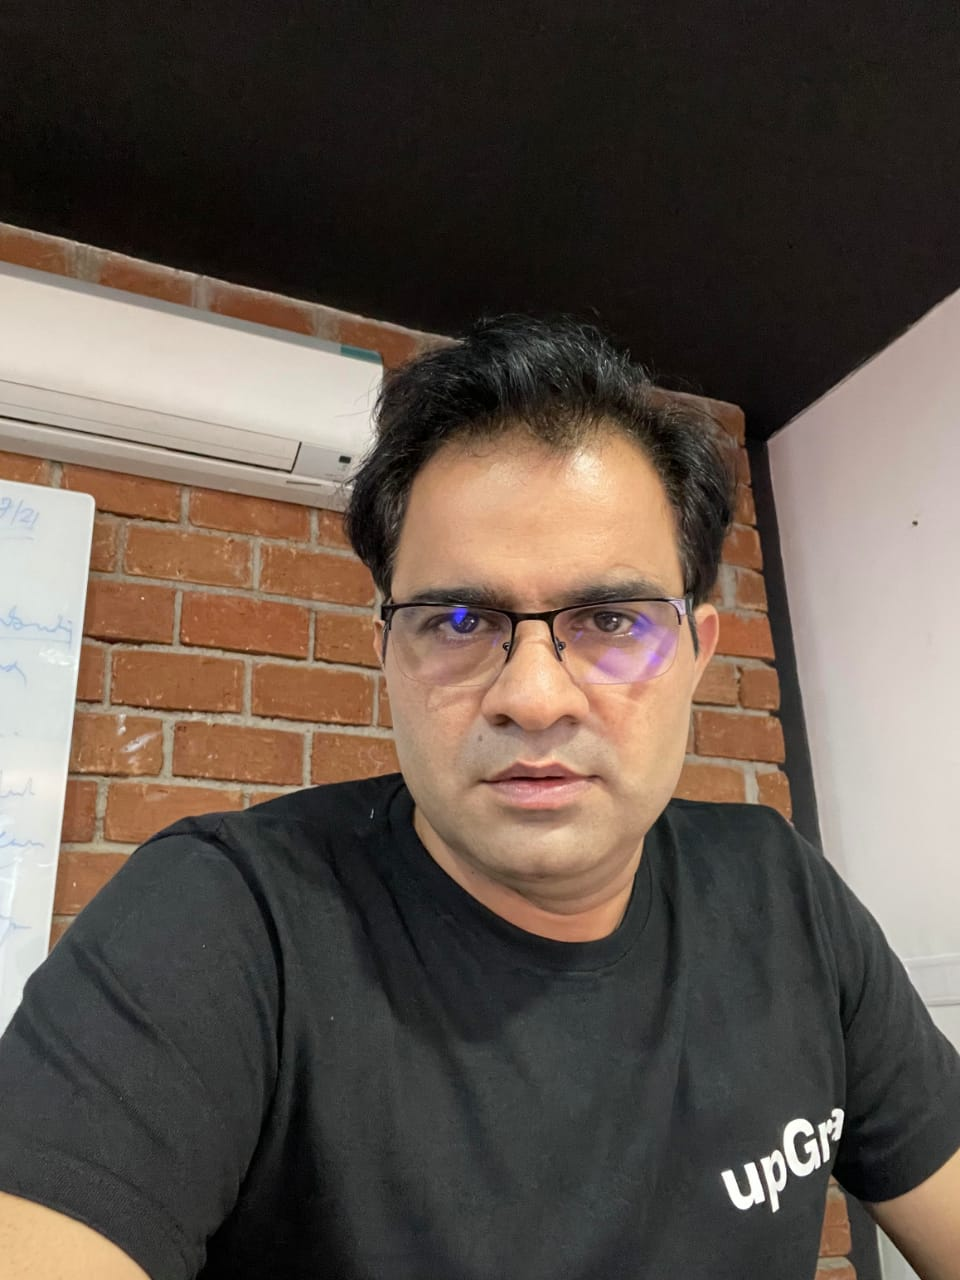 upGrad strengthens its foray into the Online Bachelor's Degree space; appoints Jeetender Singh as Business Head of the Degree Vertical